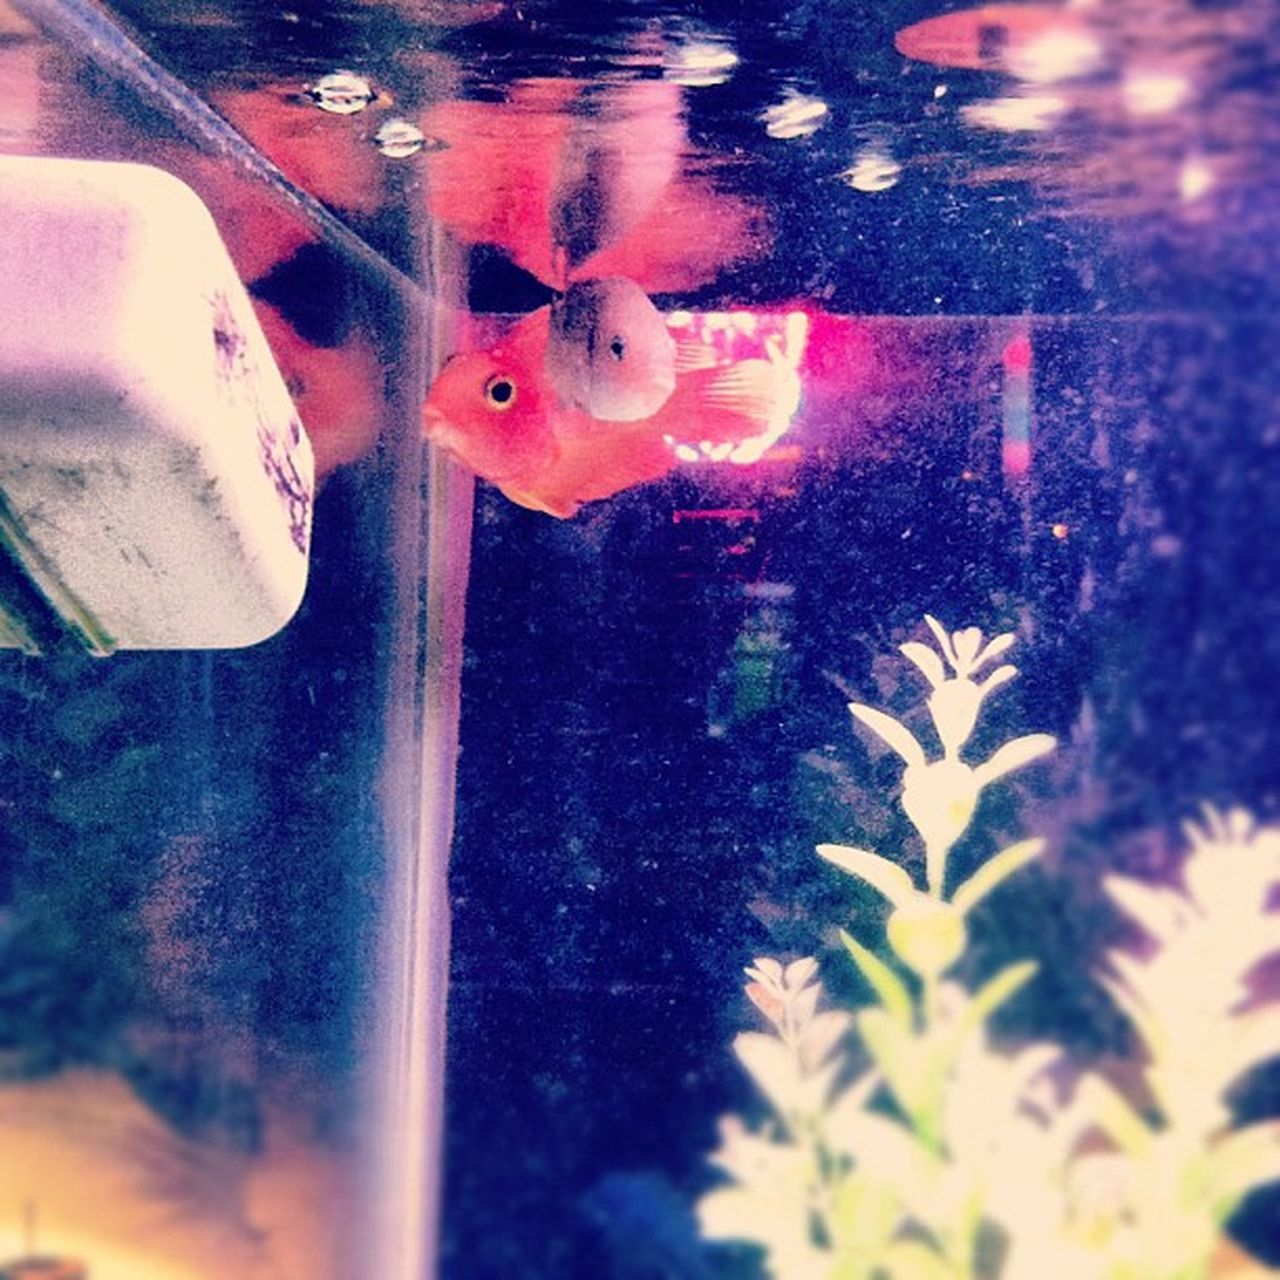 We're giving this fish #3 #days to #live. He's lookin' kinda #sketchy. Orange Therustyknot Fish Endoftheline Goldfish 3days Tank NY Westside 3 Fishtank NYC Manhattan Bar Newyork Days  Sad Newyorkcity Life Sketchy Dying Live Floater